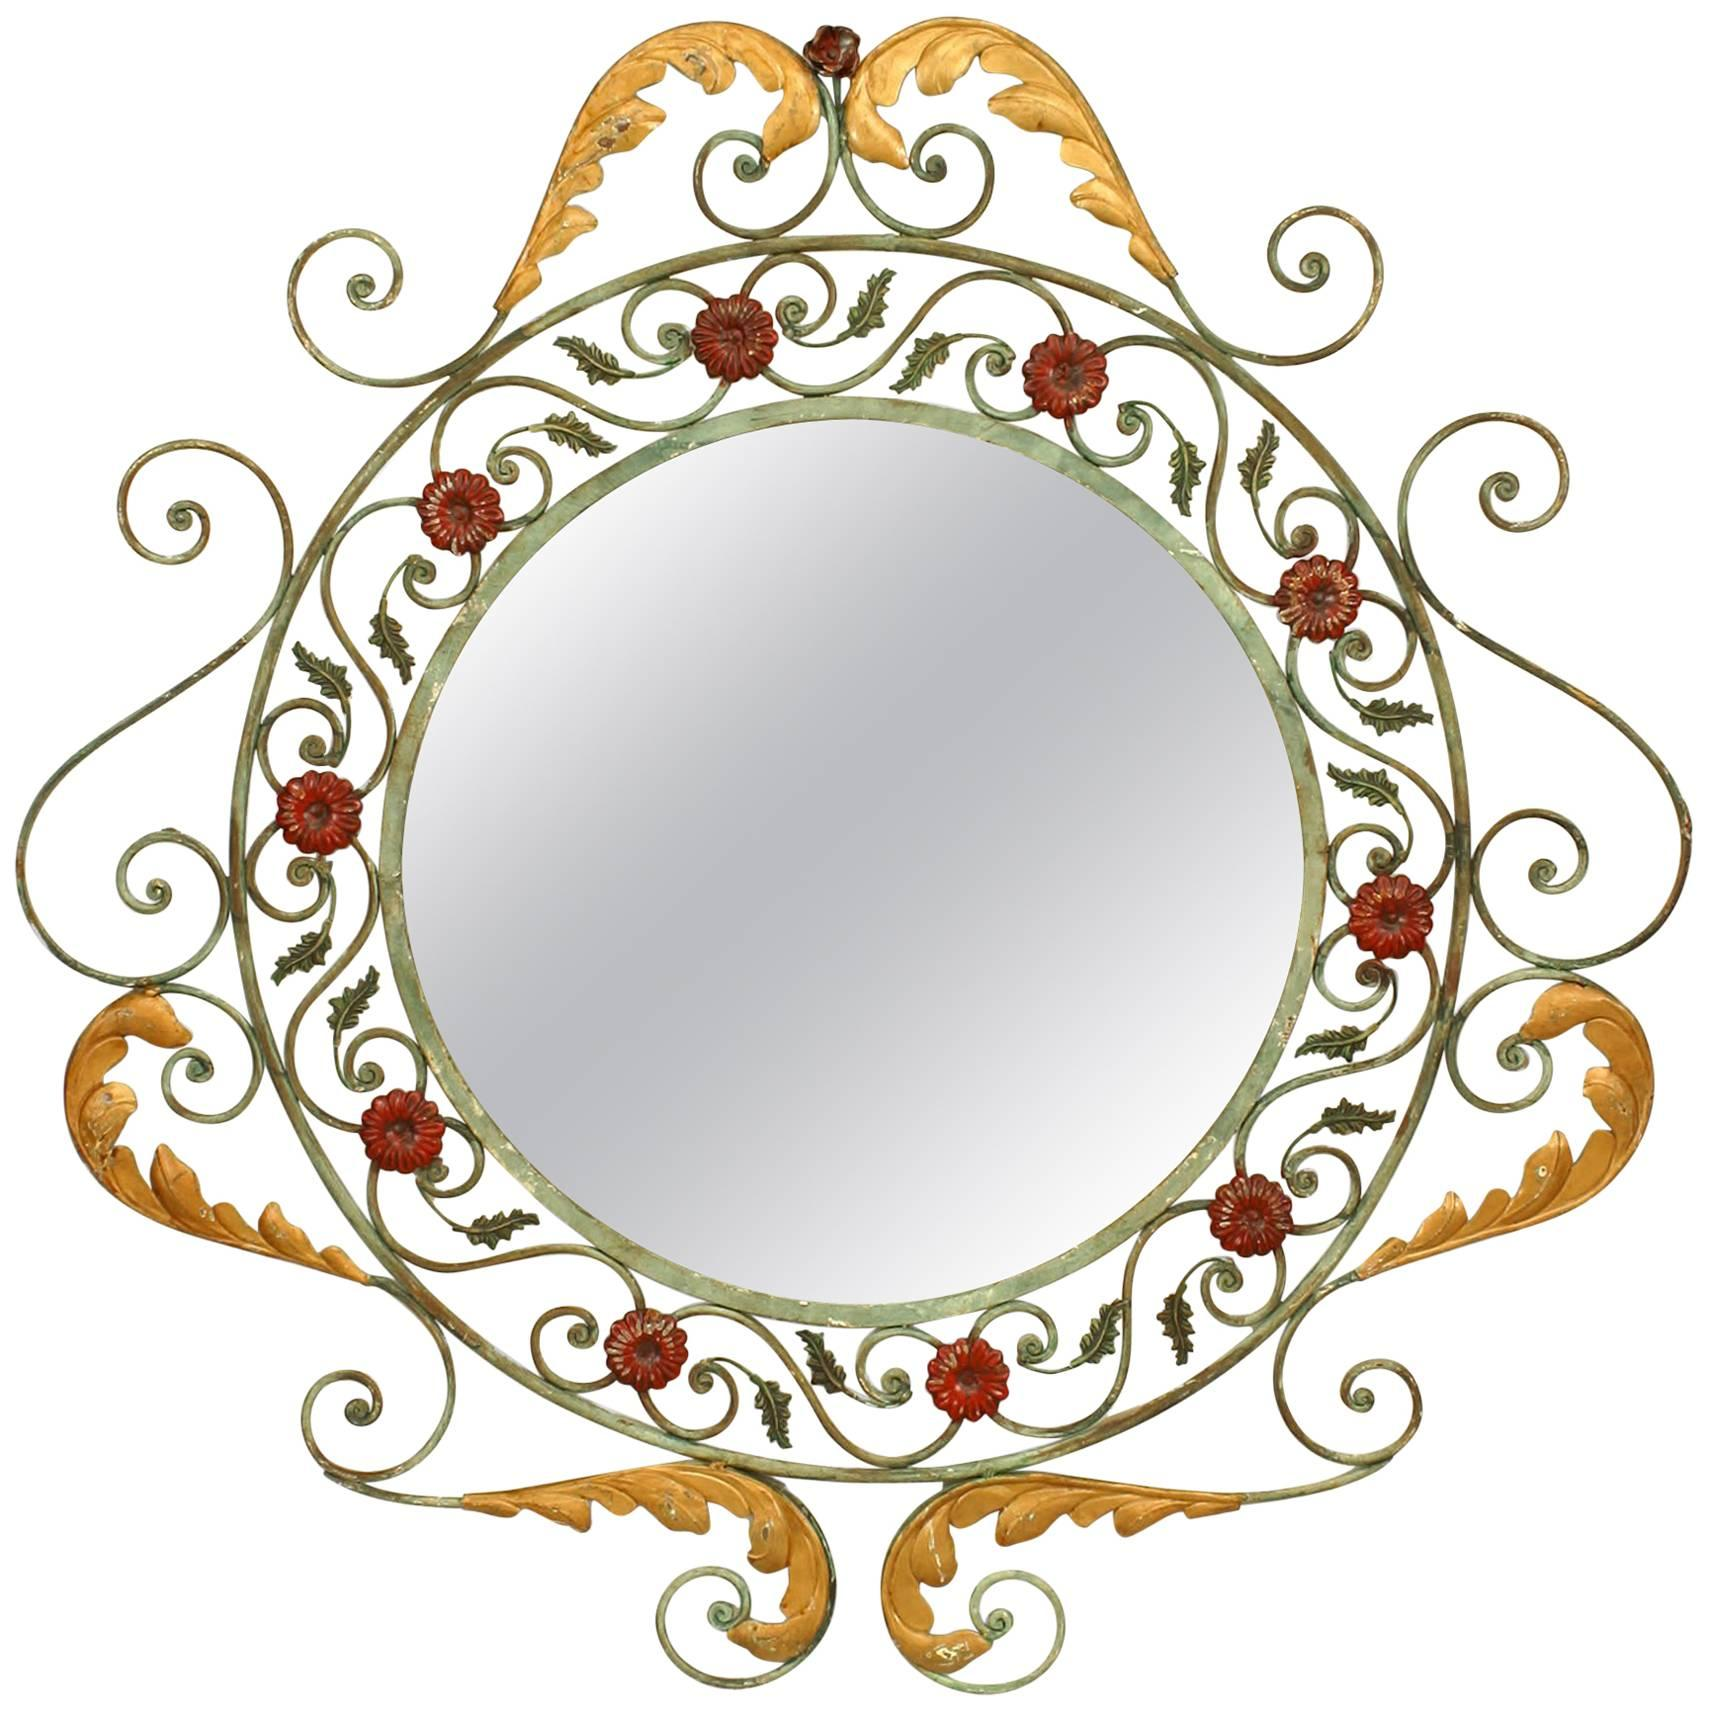 French Victorian Round Painted Wrought Iron Wall Mirror